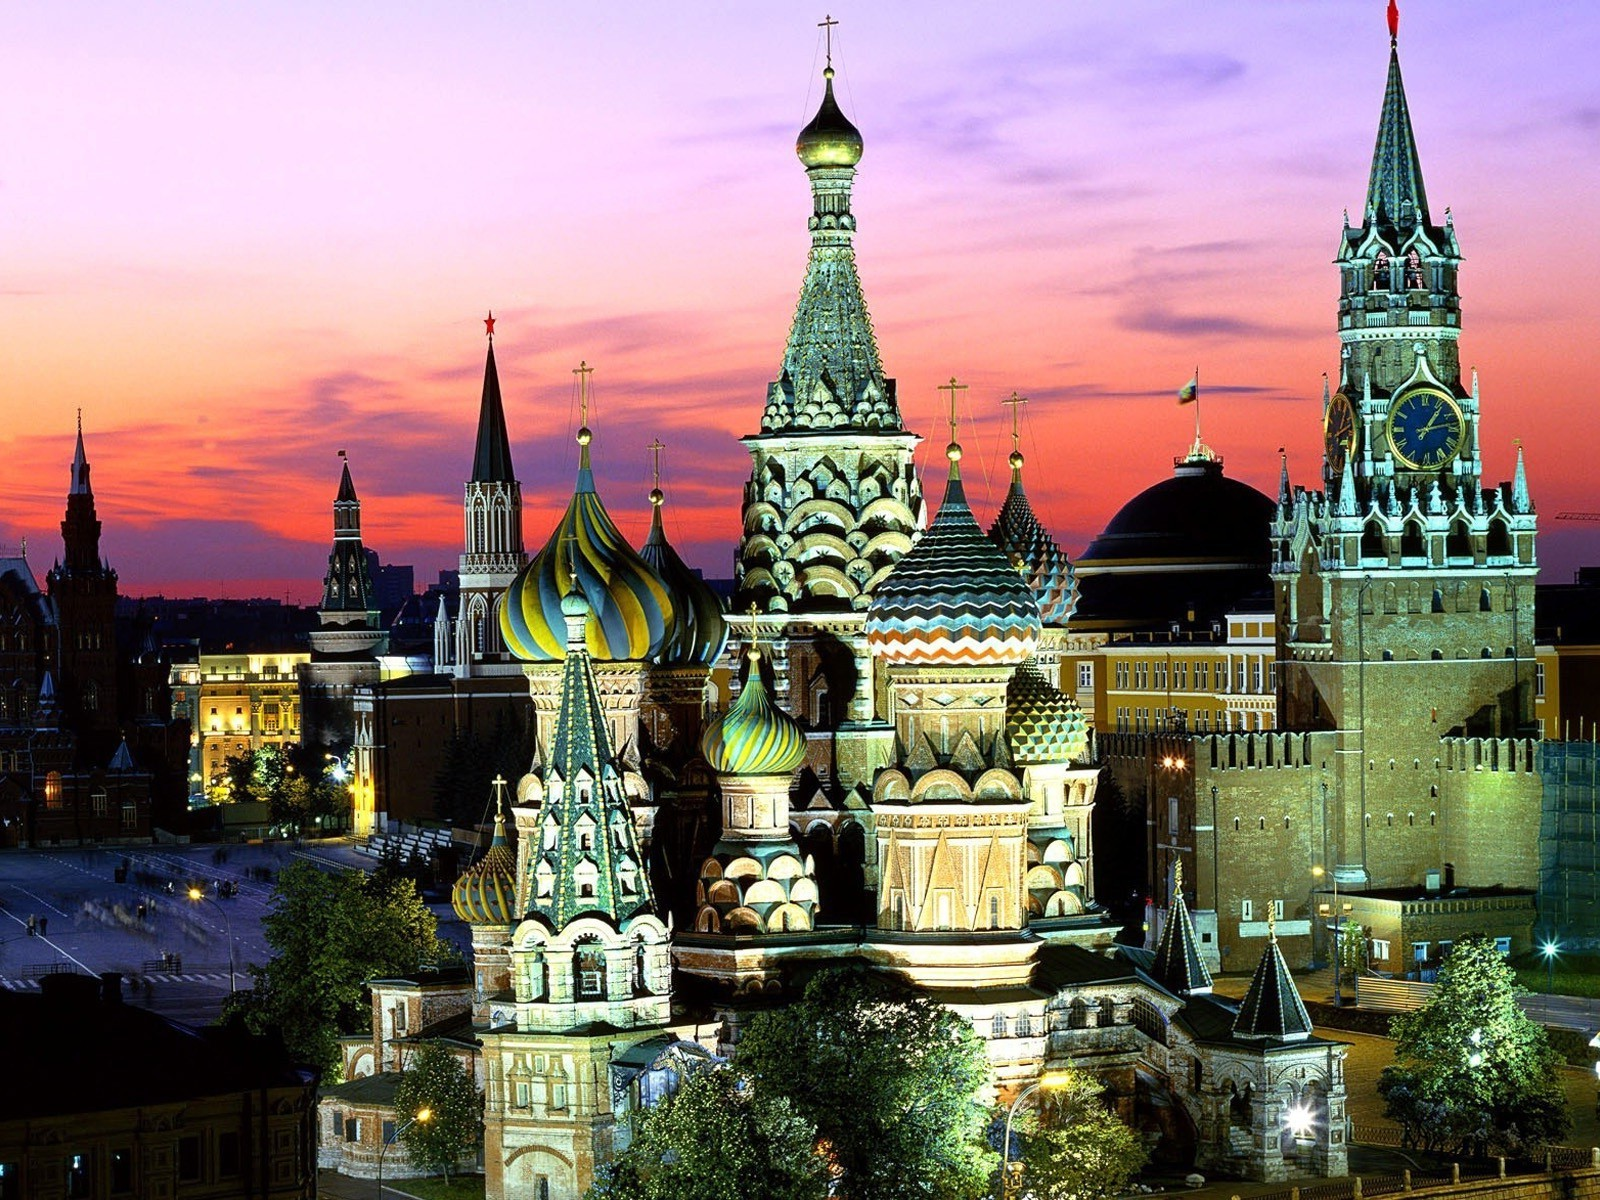 famous places architecture city church cathedral travel building sky tower kremlin dusk religion temple square sight tourism cityscape evening town culture